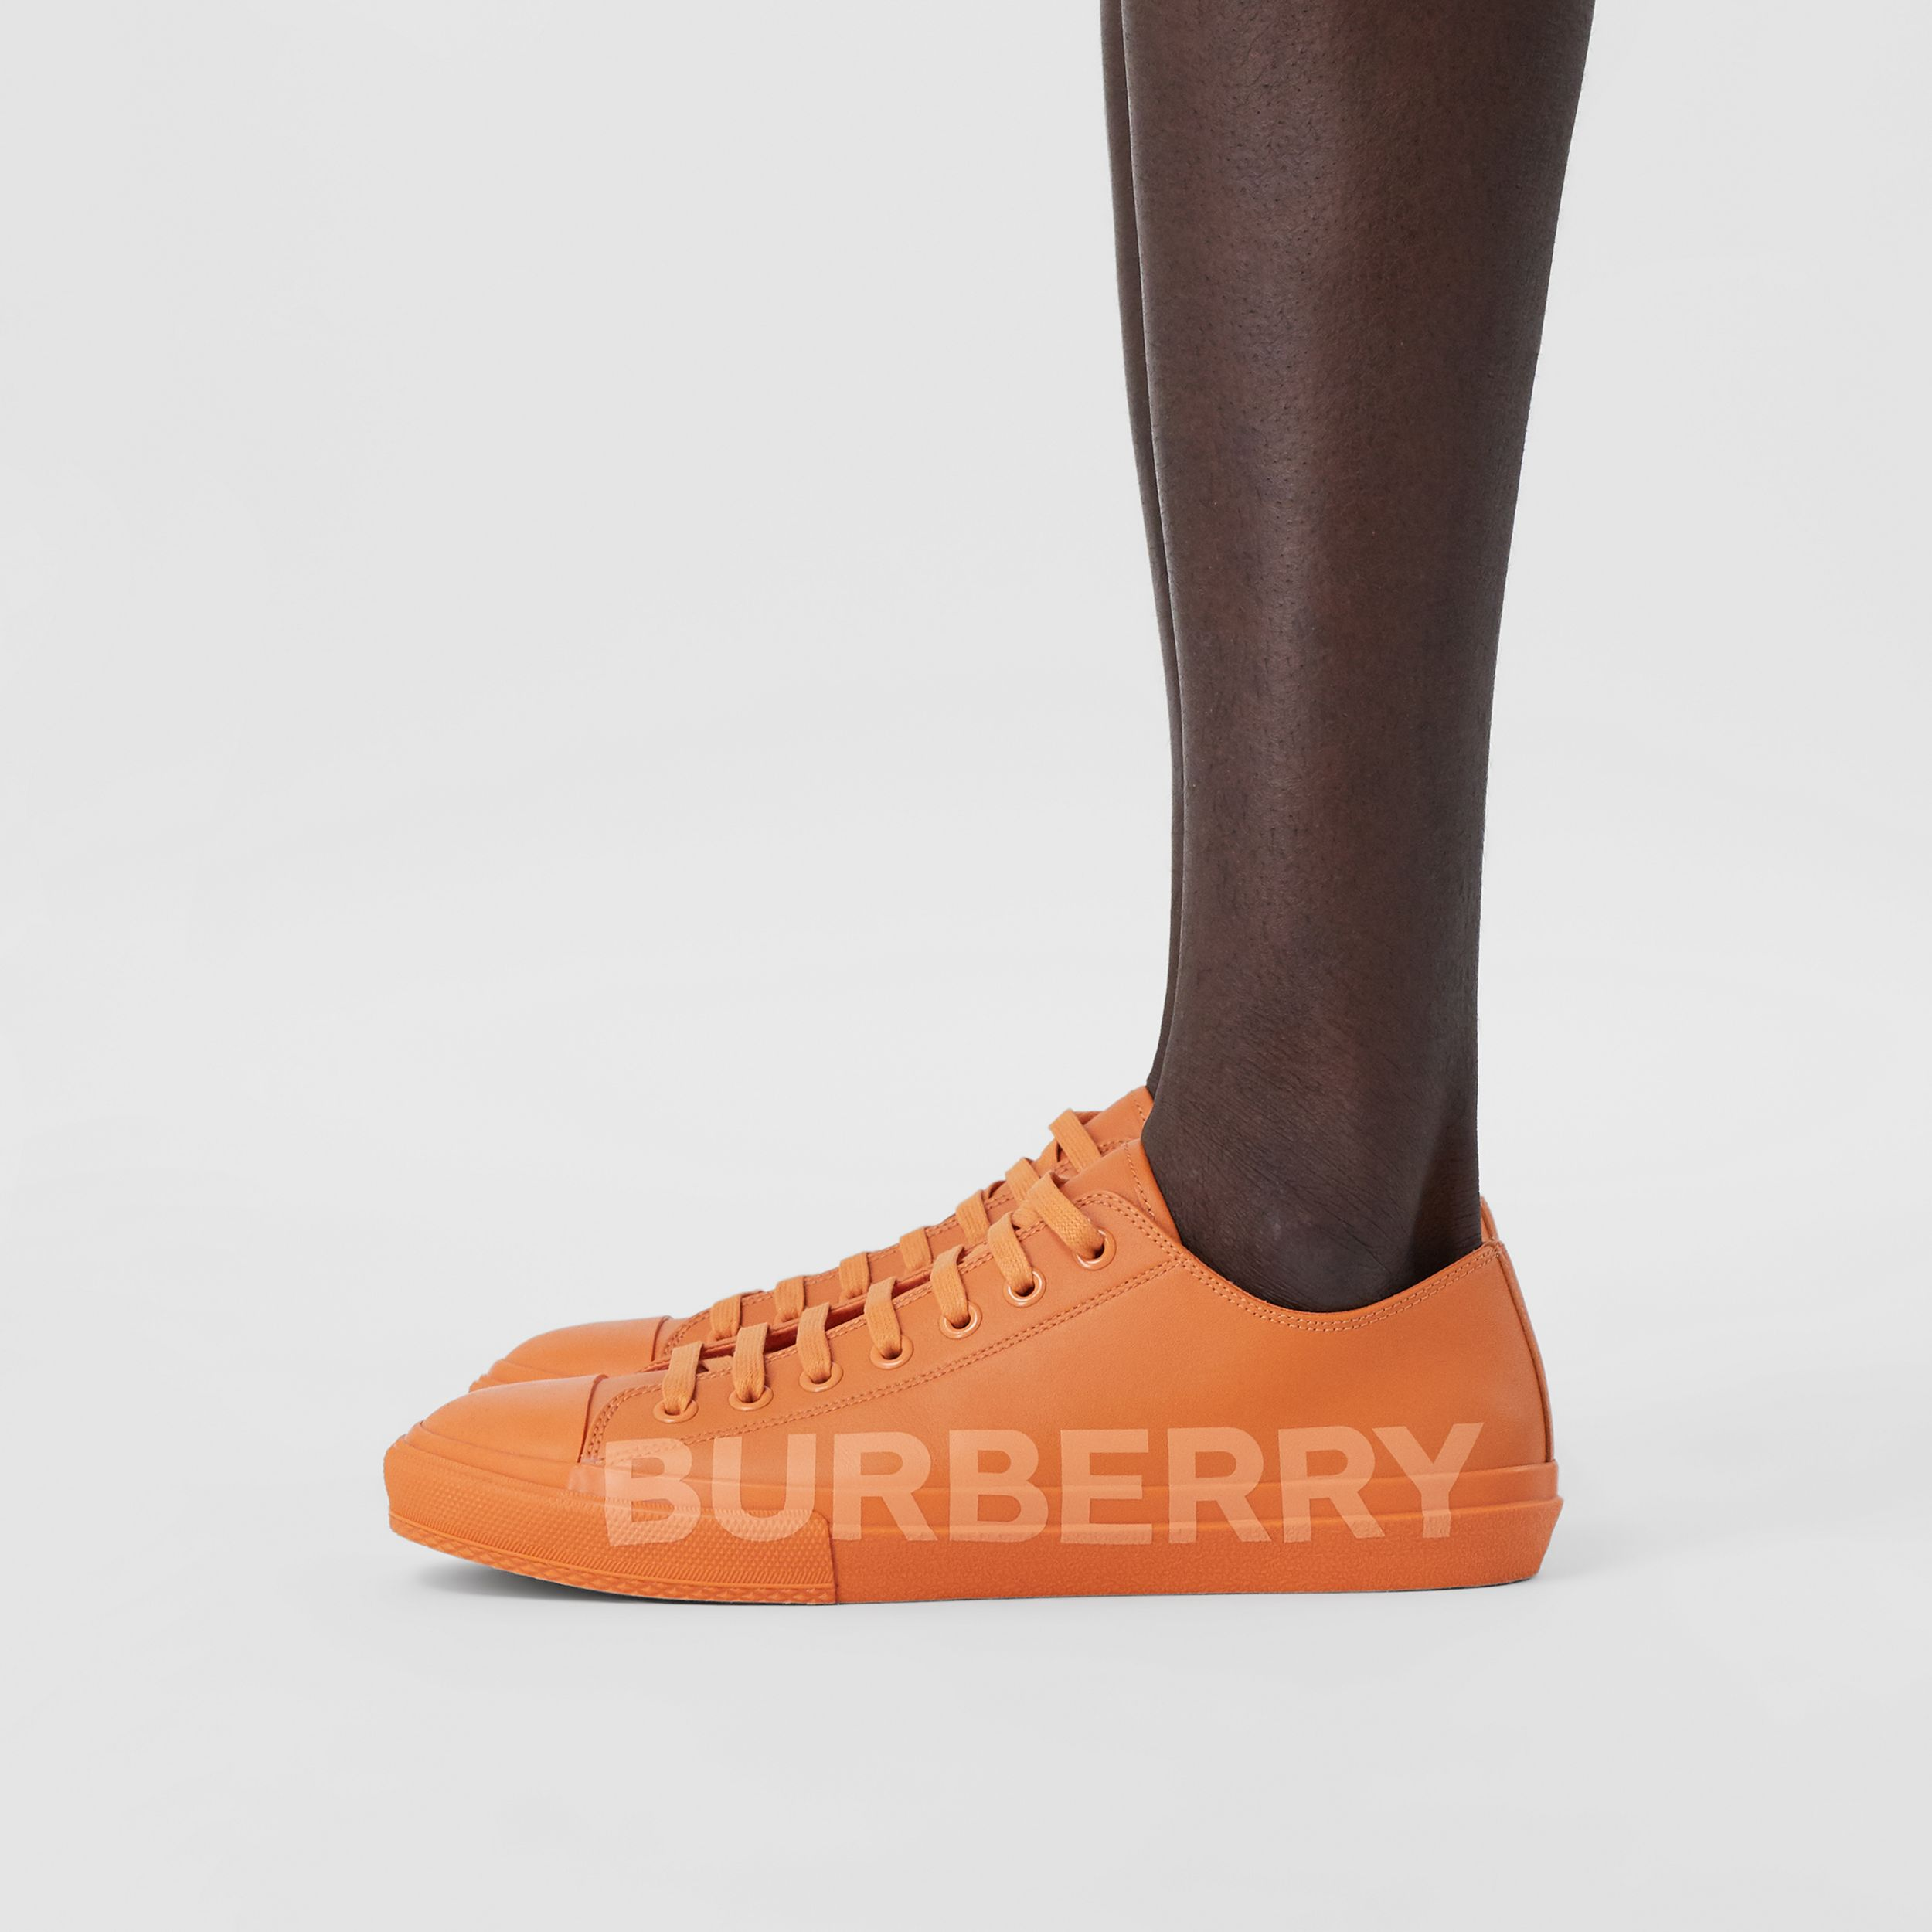 Logo Print Leather Sneakers – Online Exclusive in Deep Orange - Men | Burberry Hong Kong S.A.R. - 3